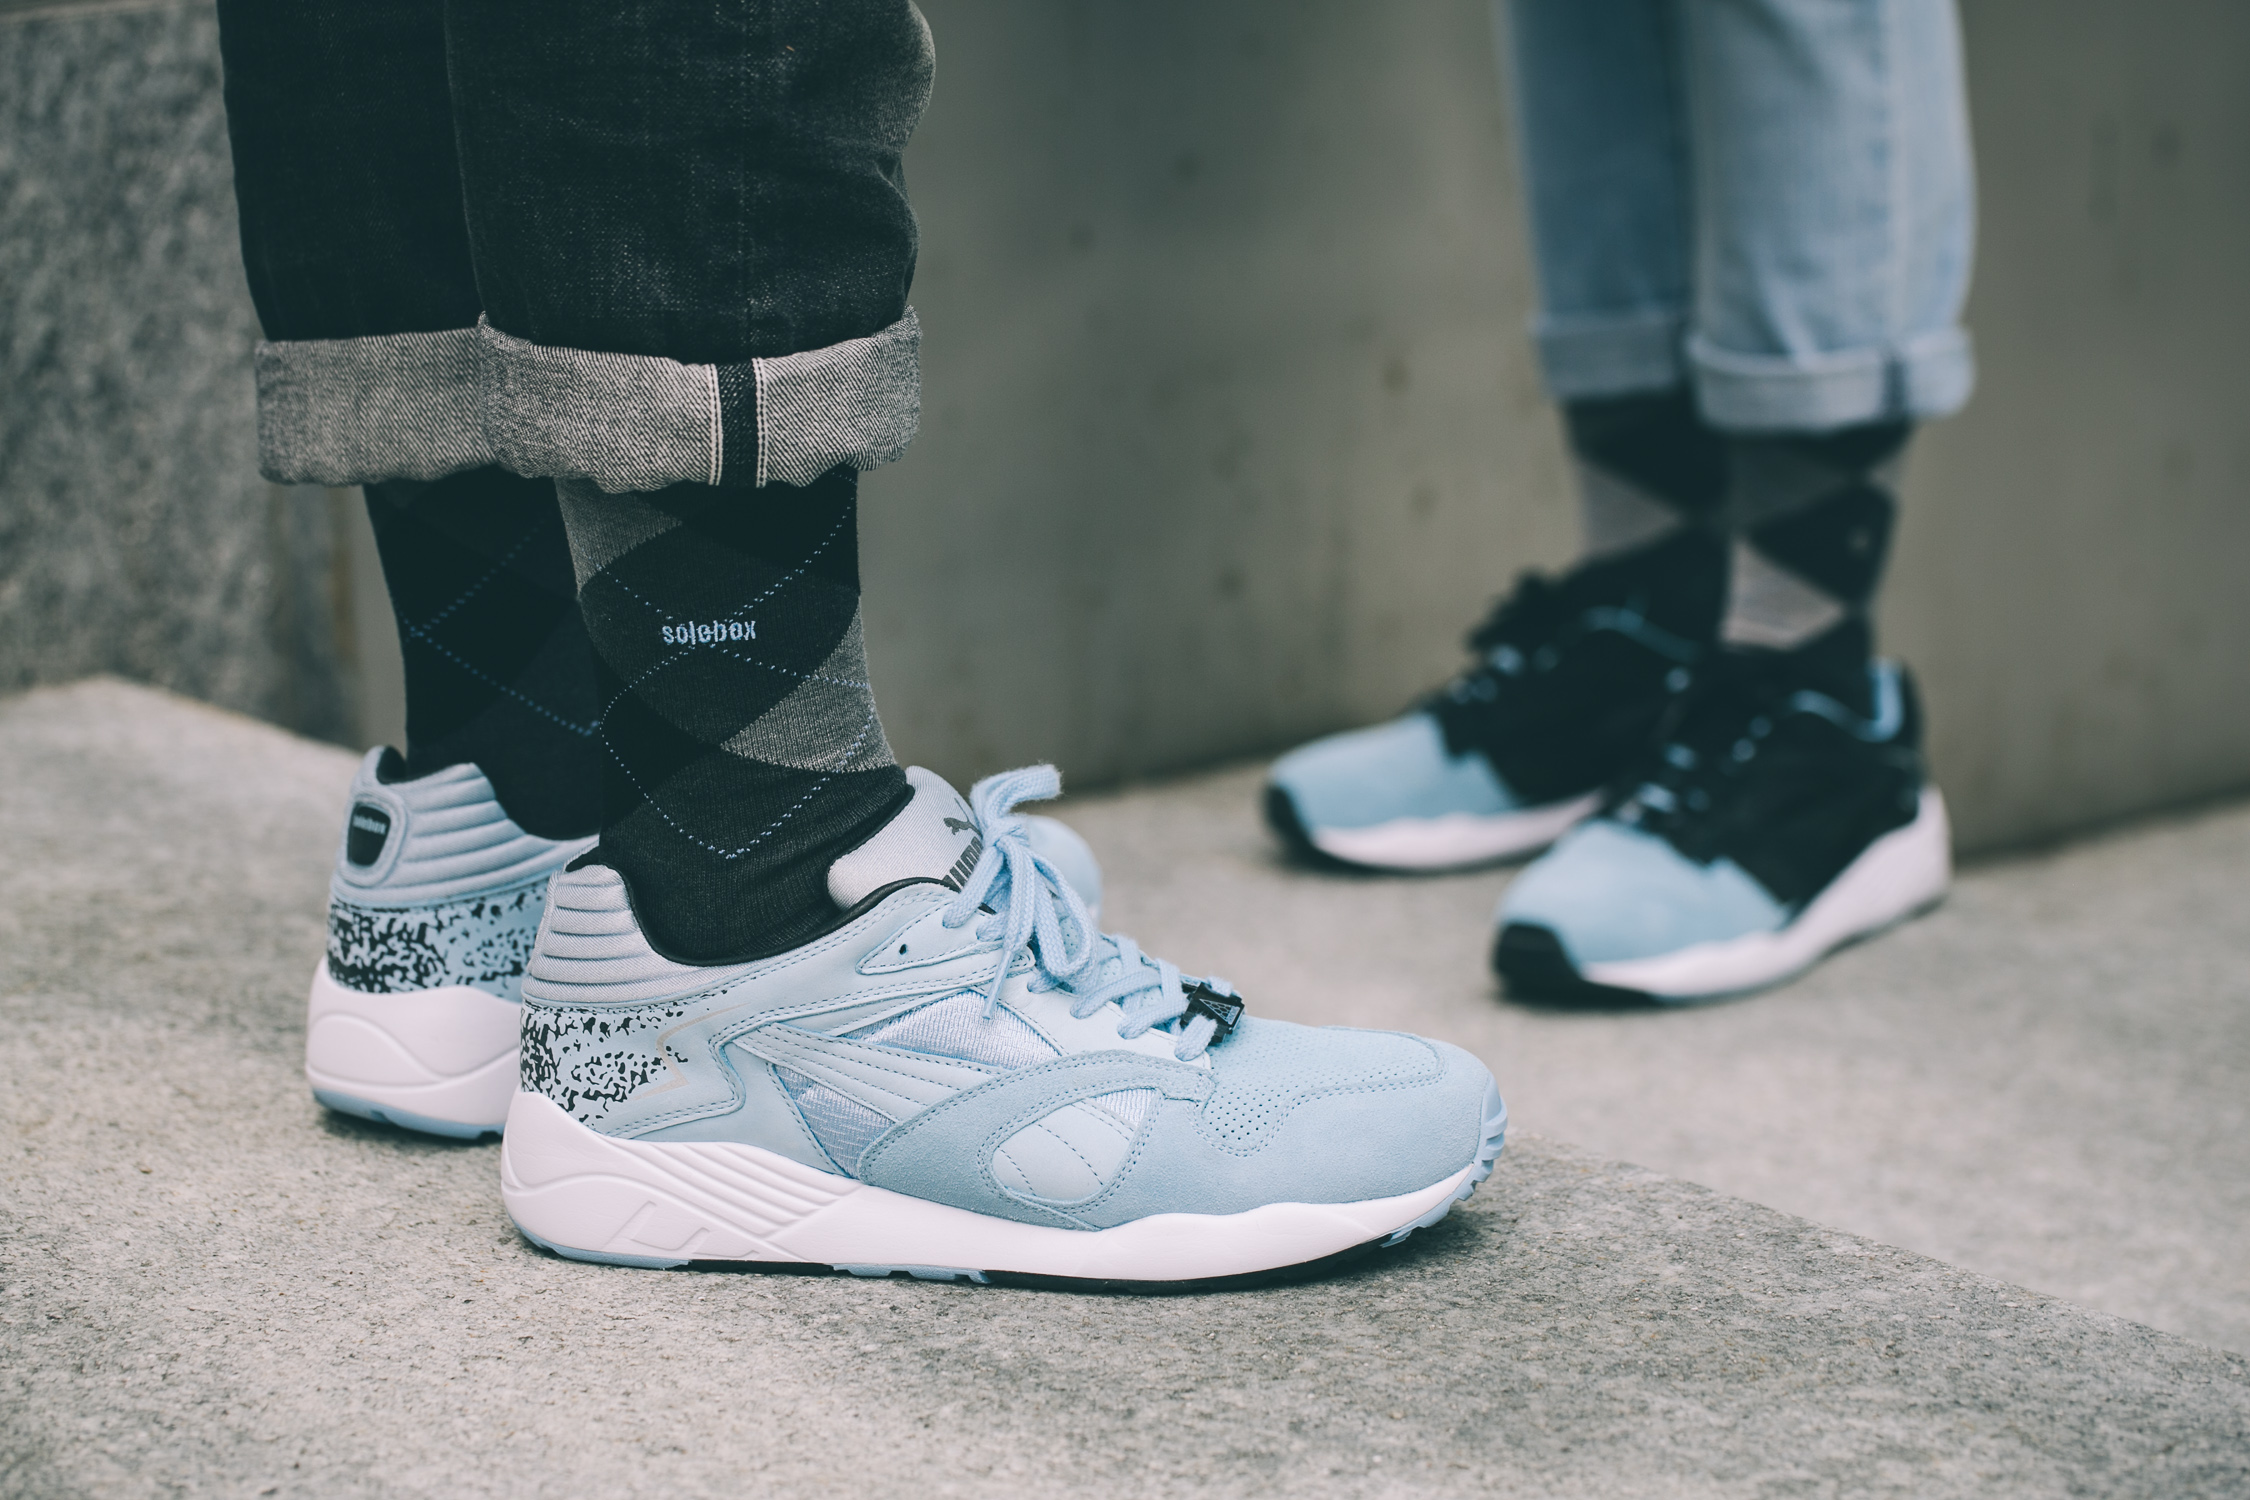 solebox x Puma XS850 Adventurer Pack Has a Release Date - WearTesters 858c4f5a4152